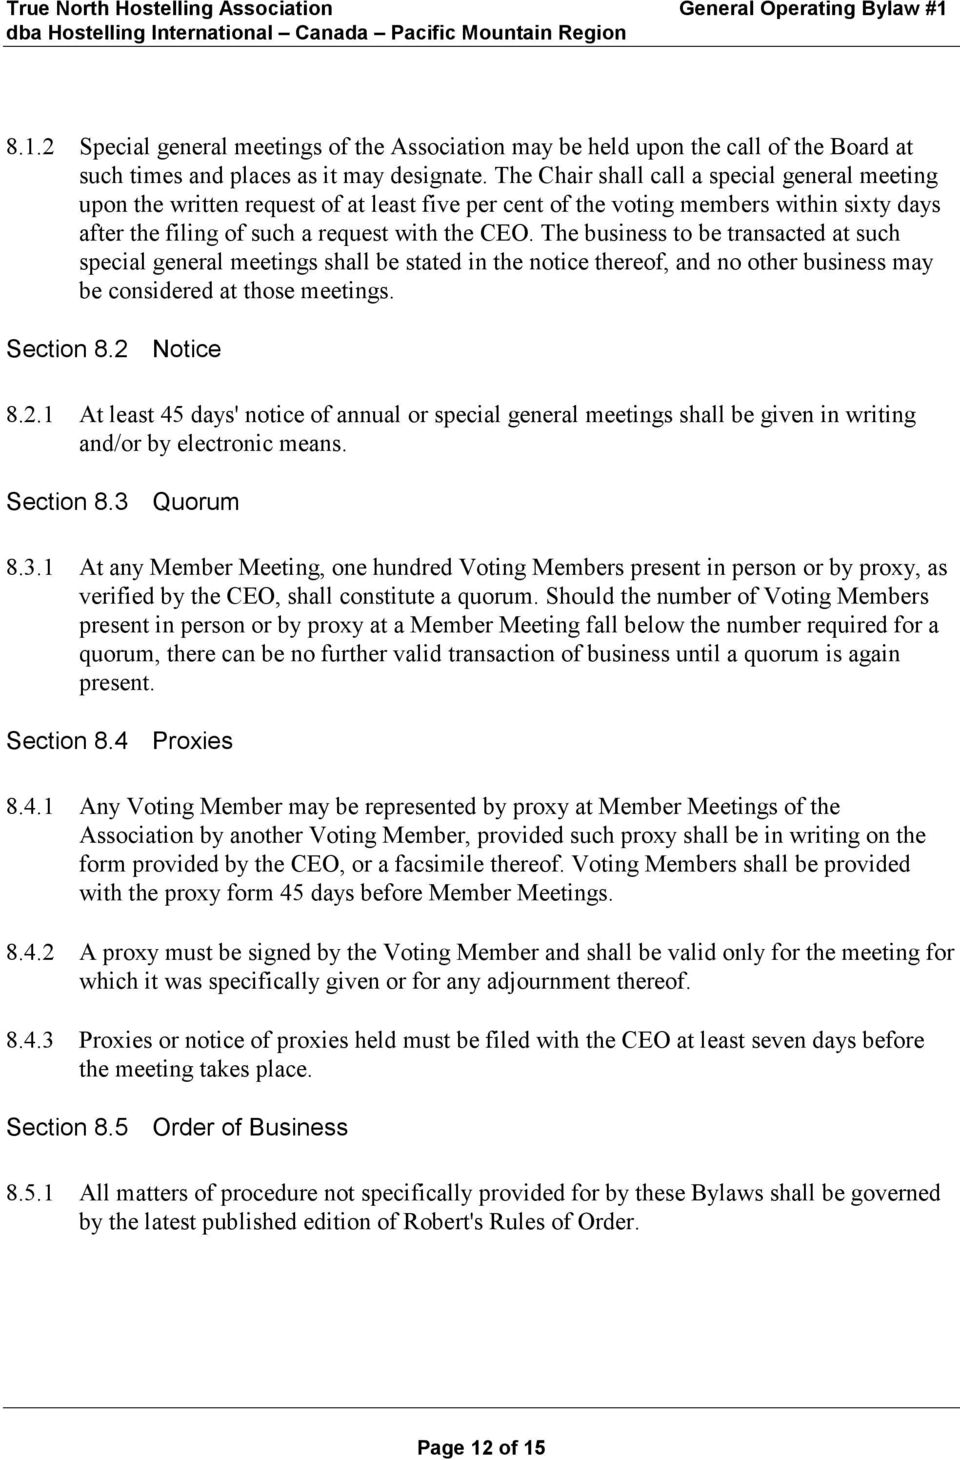 The business to be transacted at such special general meetings shall be stated in the notice thereof, and no other business may be considered at those meetings. Section 8.2